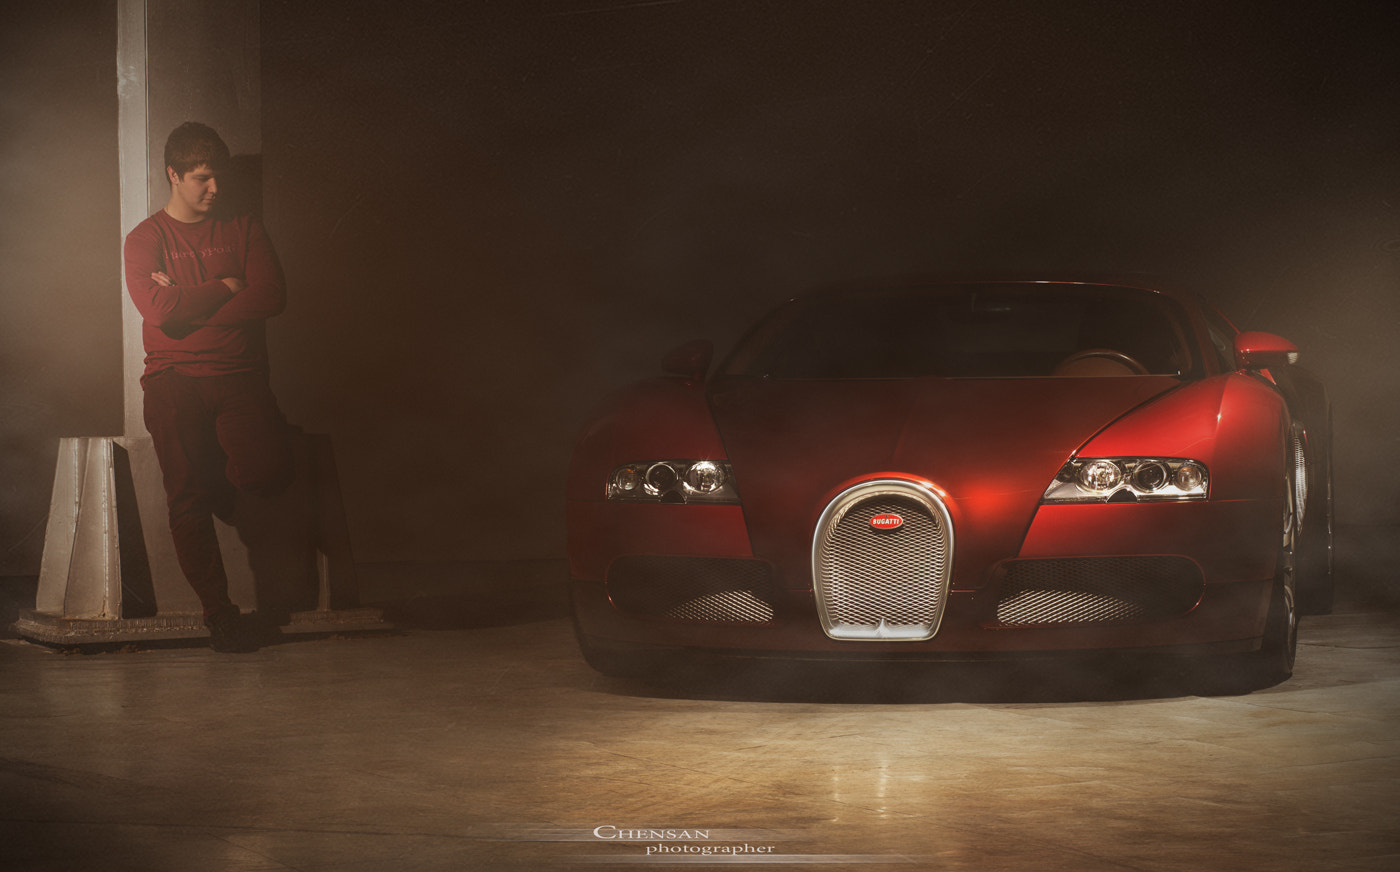 Photograph  Сhensan photographer & Rabid record .Bugatti Veyron 16.4 Special Edition .by Chensan by  Chensan on 500px